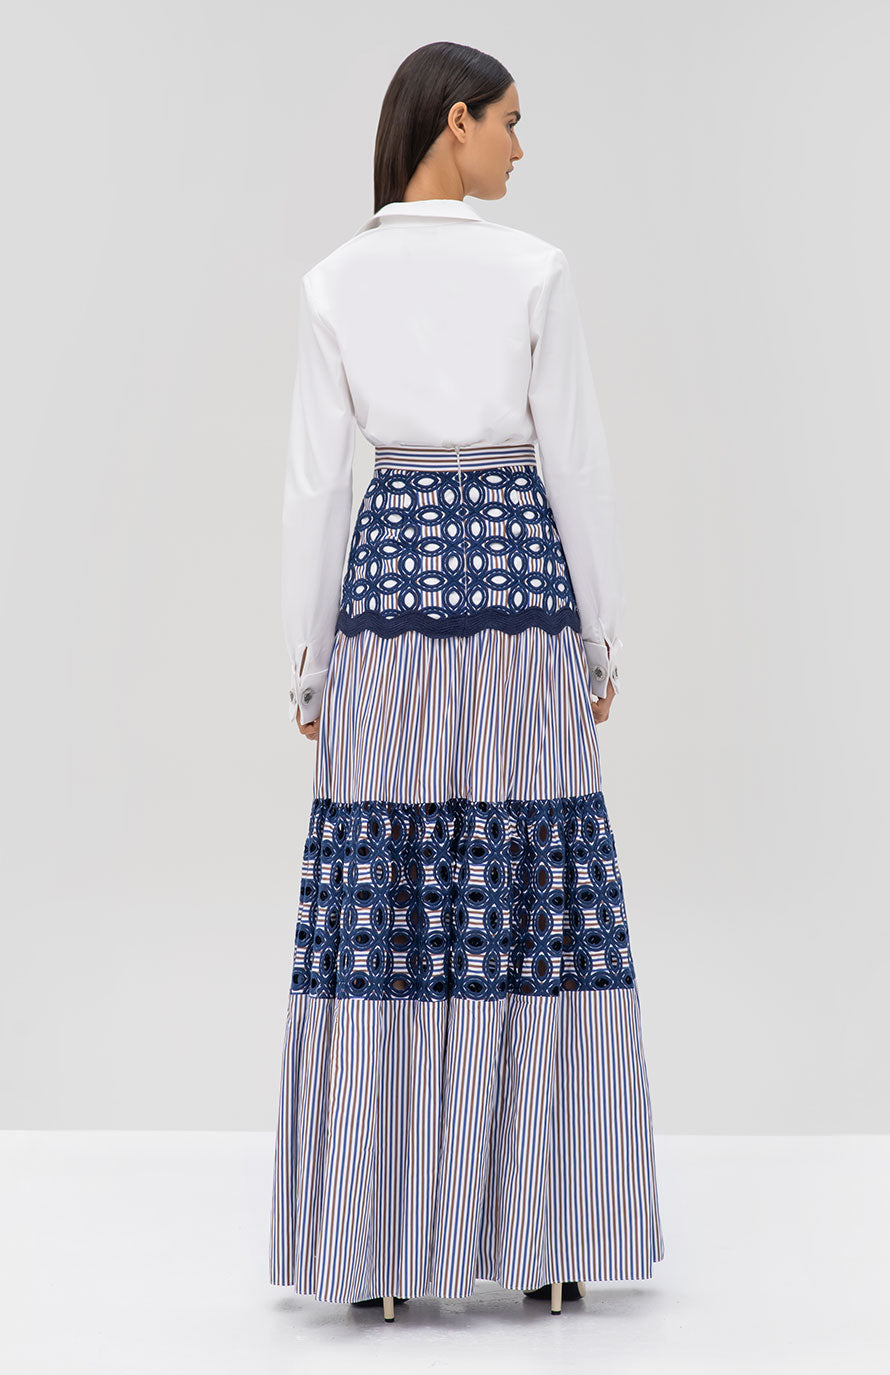 Alexis Roxanne Top in White and Kyndal Skirt in Embroidered Stripes - Rear View